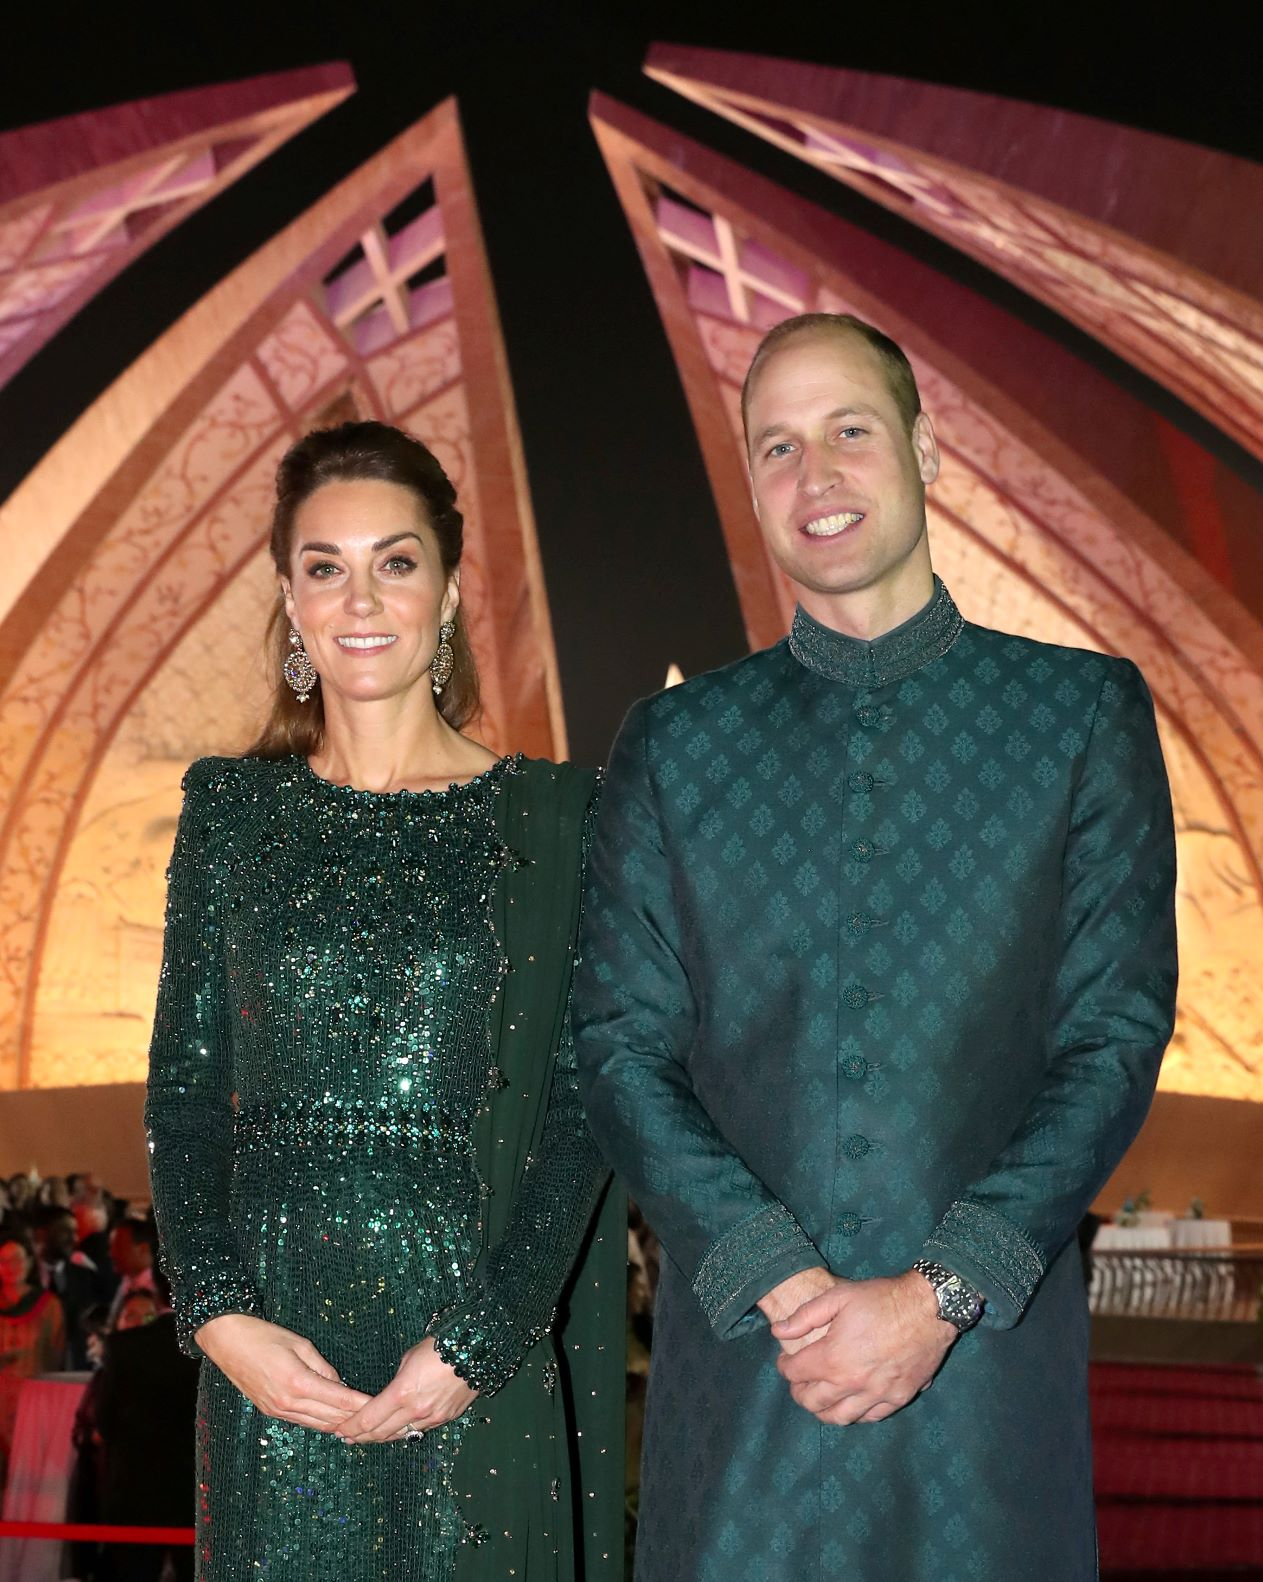 Royal visit: The Duke and Duchess of Cambridge at Pakistan's National Monument